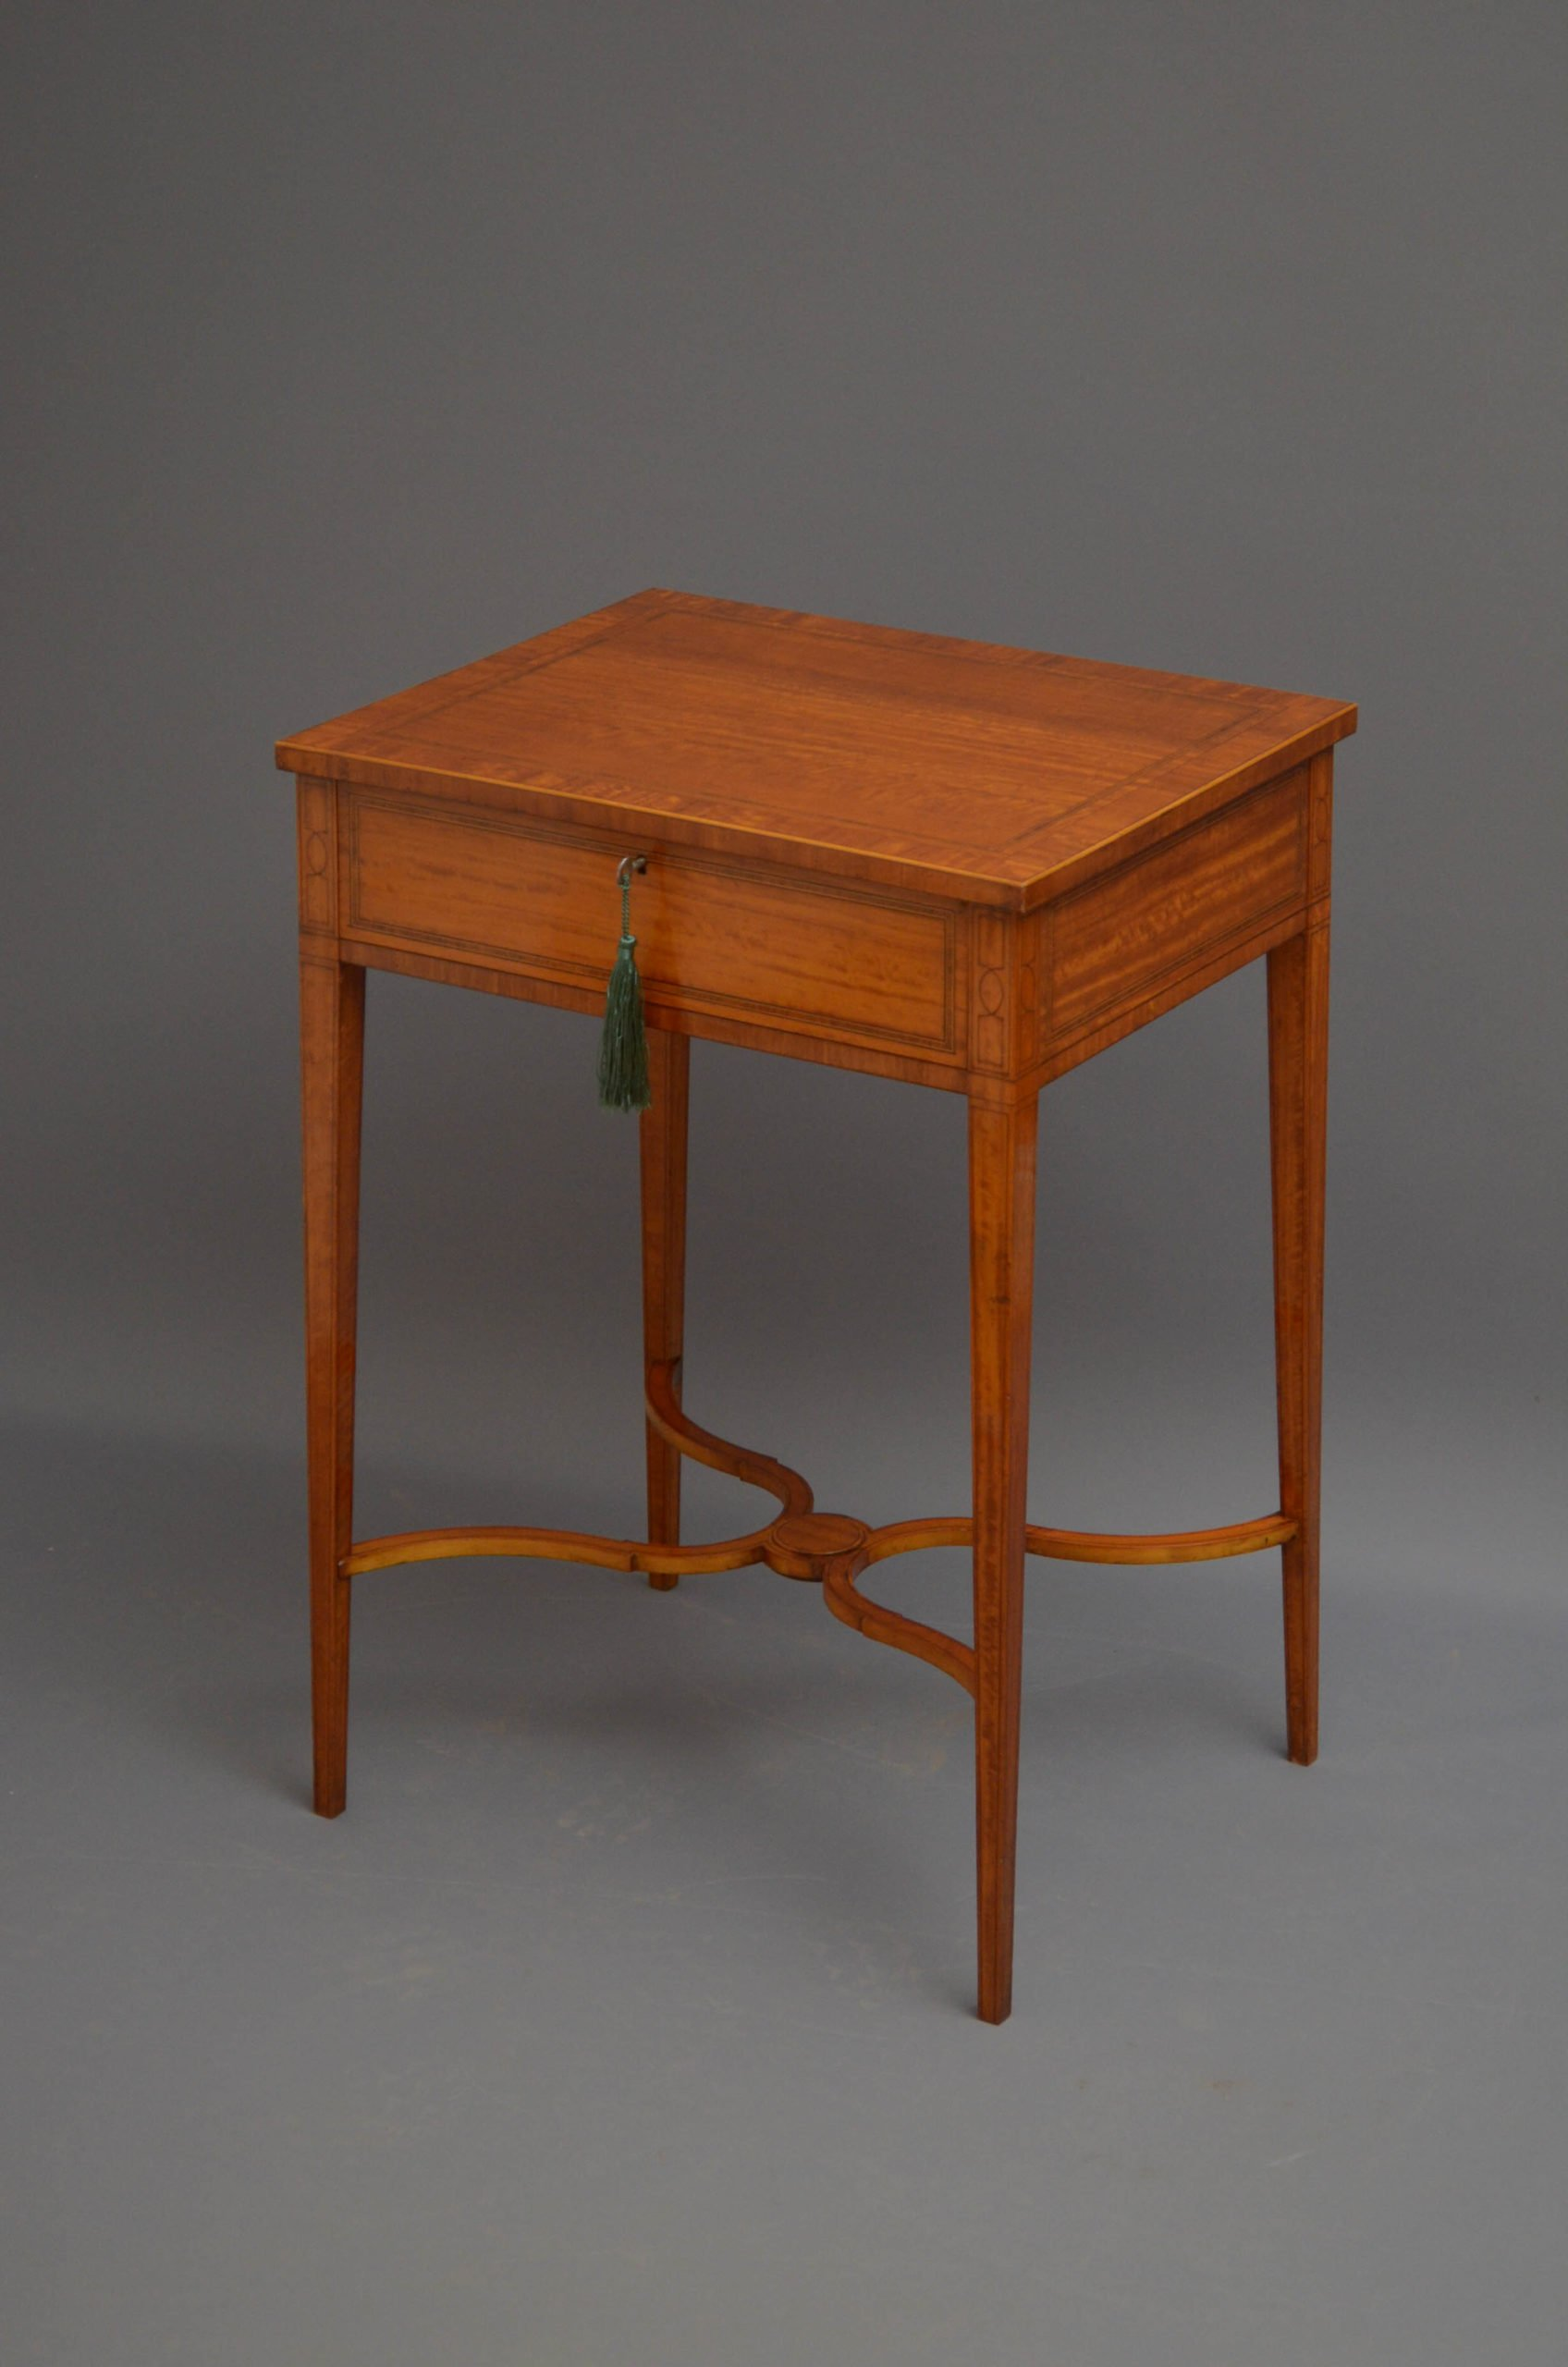 Turn of the Century Satinwood Table